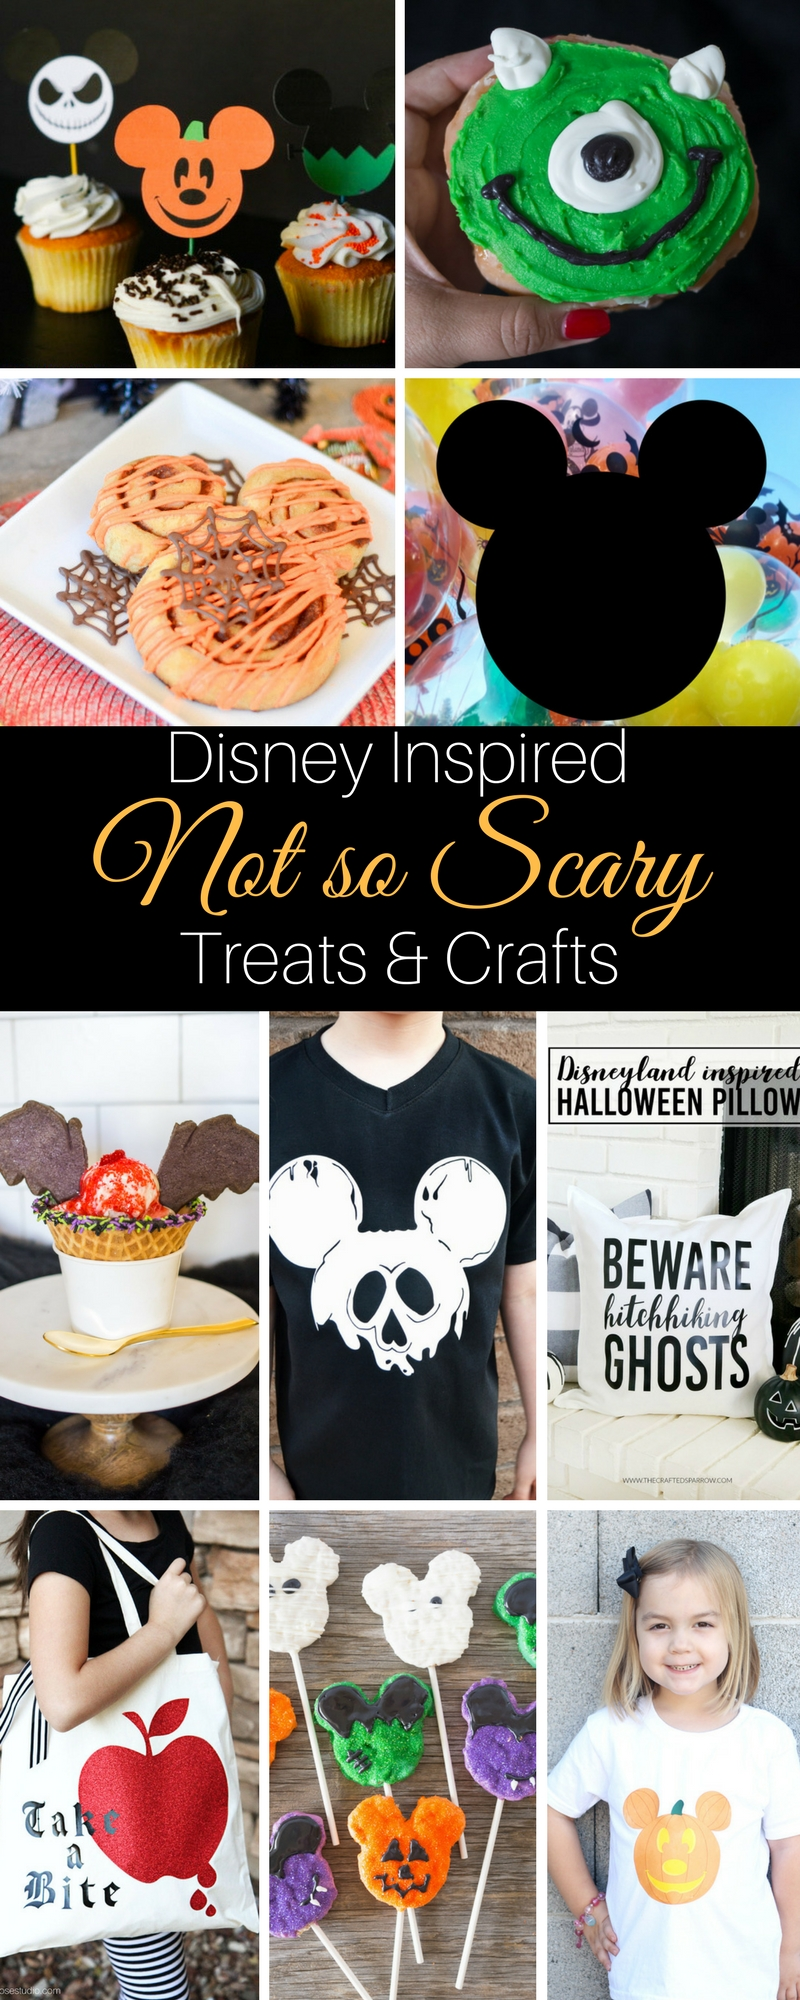 9 not so scary treats and crafts to make to celebrate Halloween Time at Disneyland.